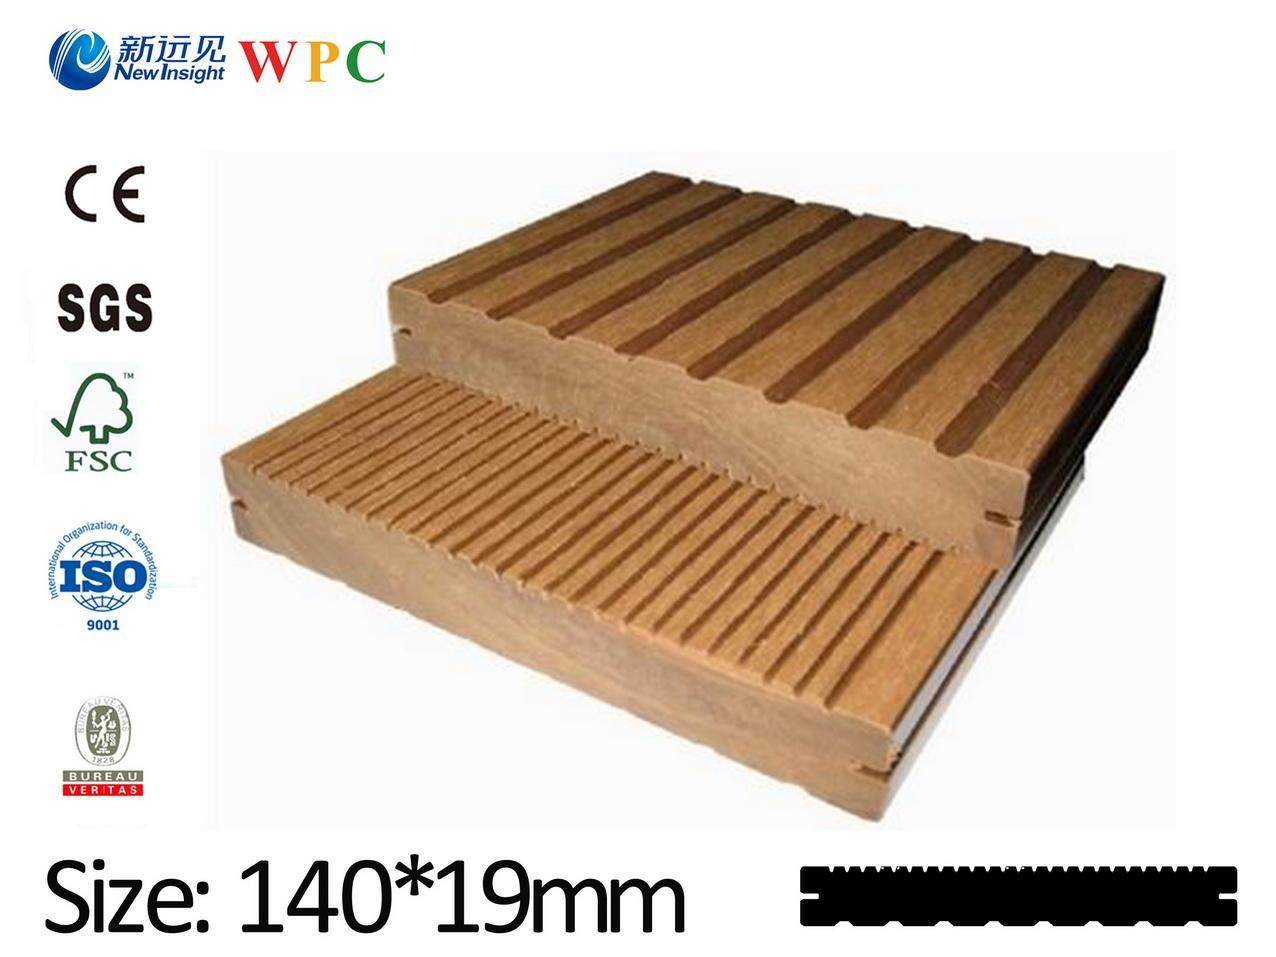 Supple China Waterproof Antiseptic Outdoor Decking Plastic Wood Wpcdecking Long Life Paint Free China Wpc Wpc Ing China Waterproof Antiseptic Outdoor Decking Plastic Wood Decking houzz-02 Waterproof Paint For Wood